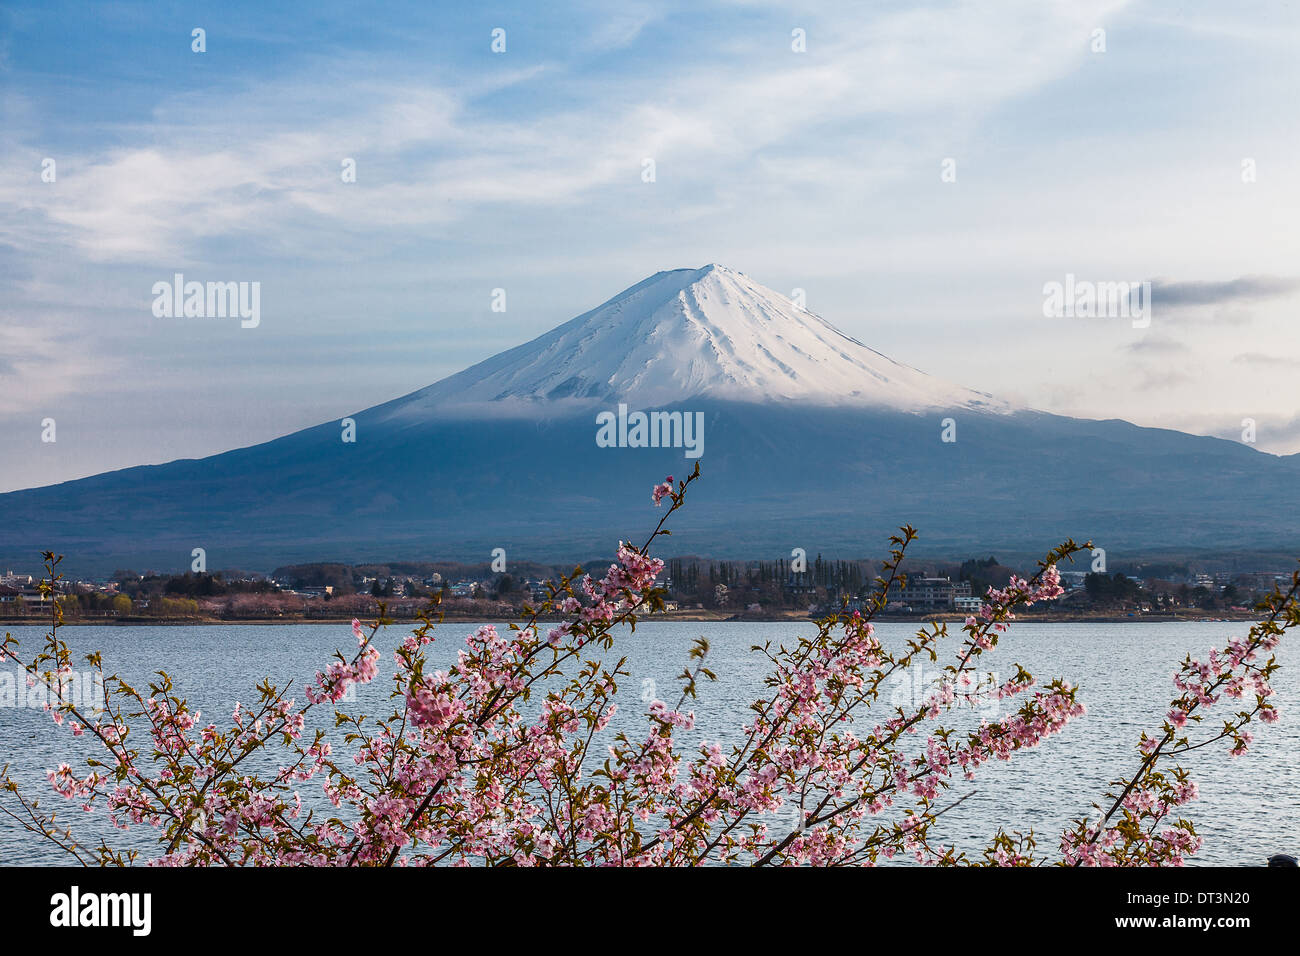 Nice and beautiful scenery of mount Fuji and pink cherry blossoms in spring time, Japan - Stock Image